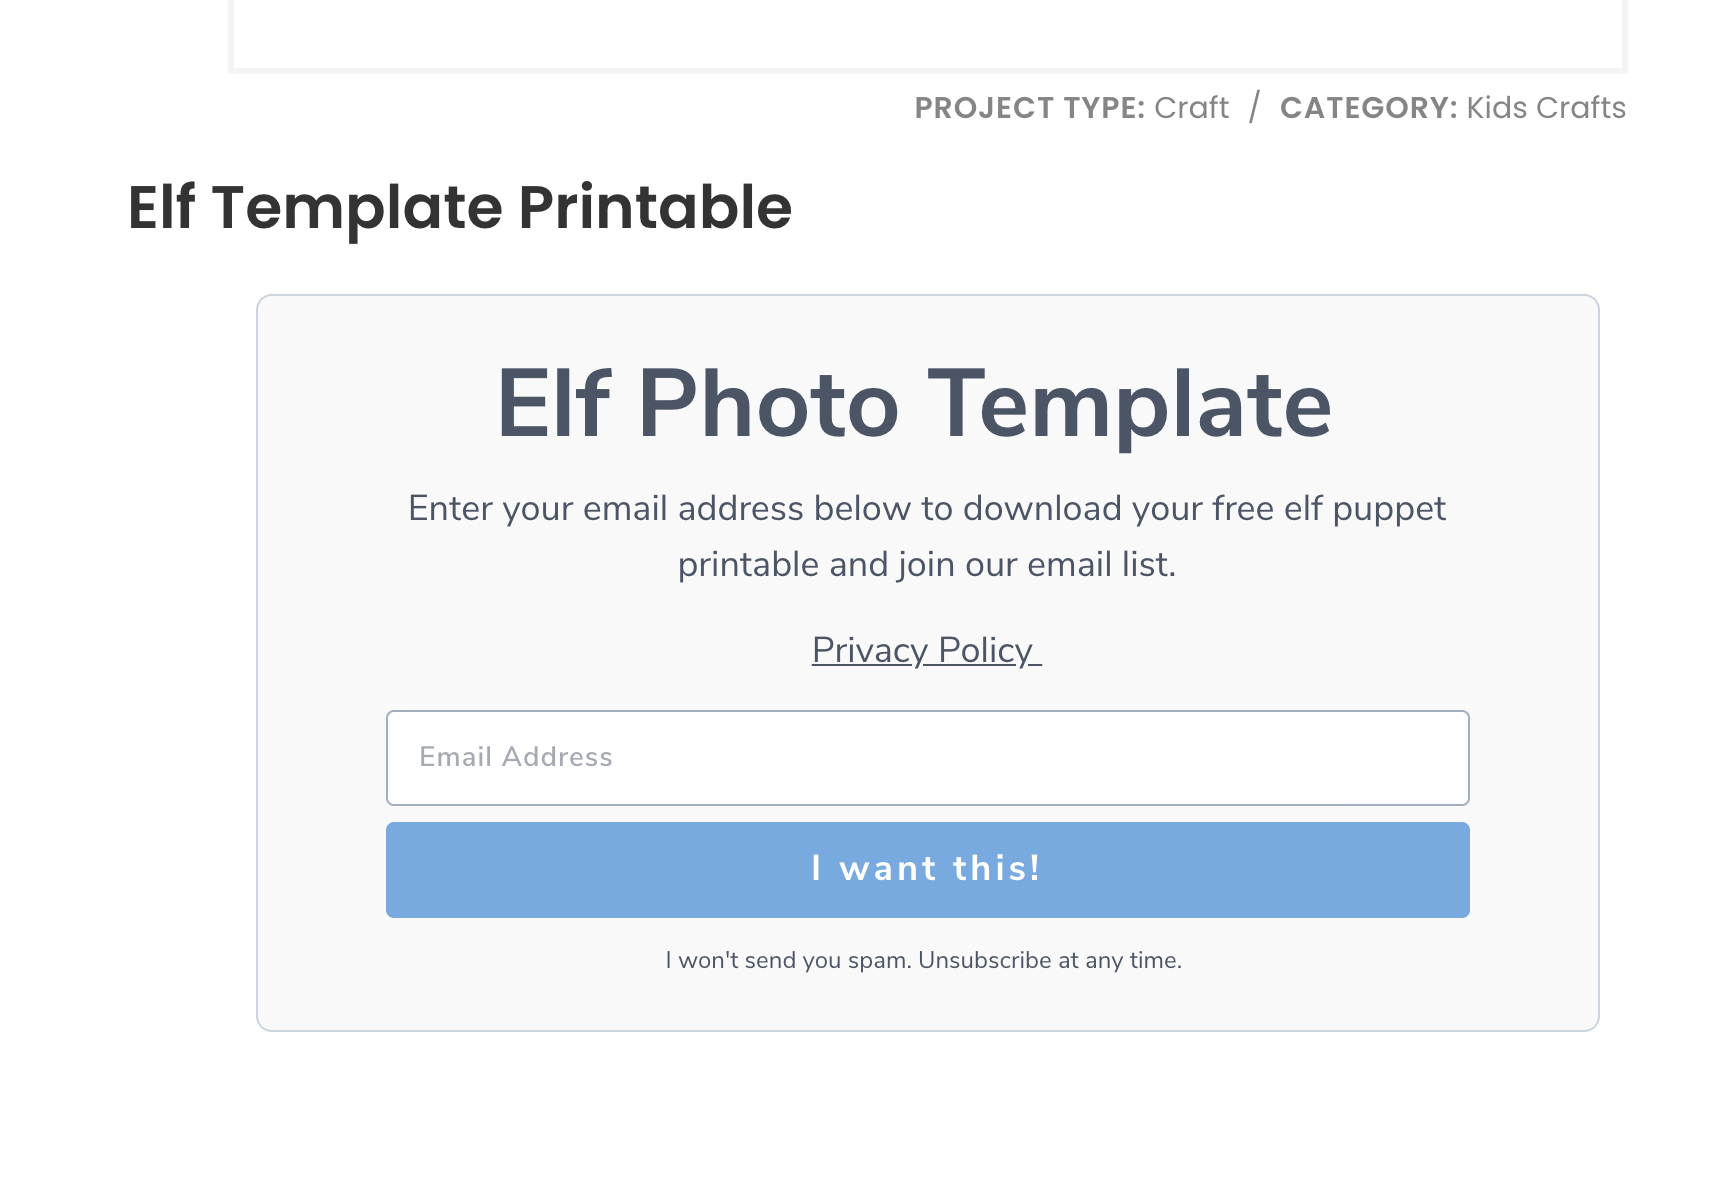 elf photo template form